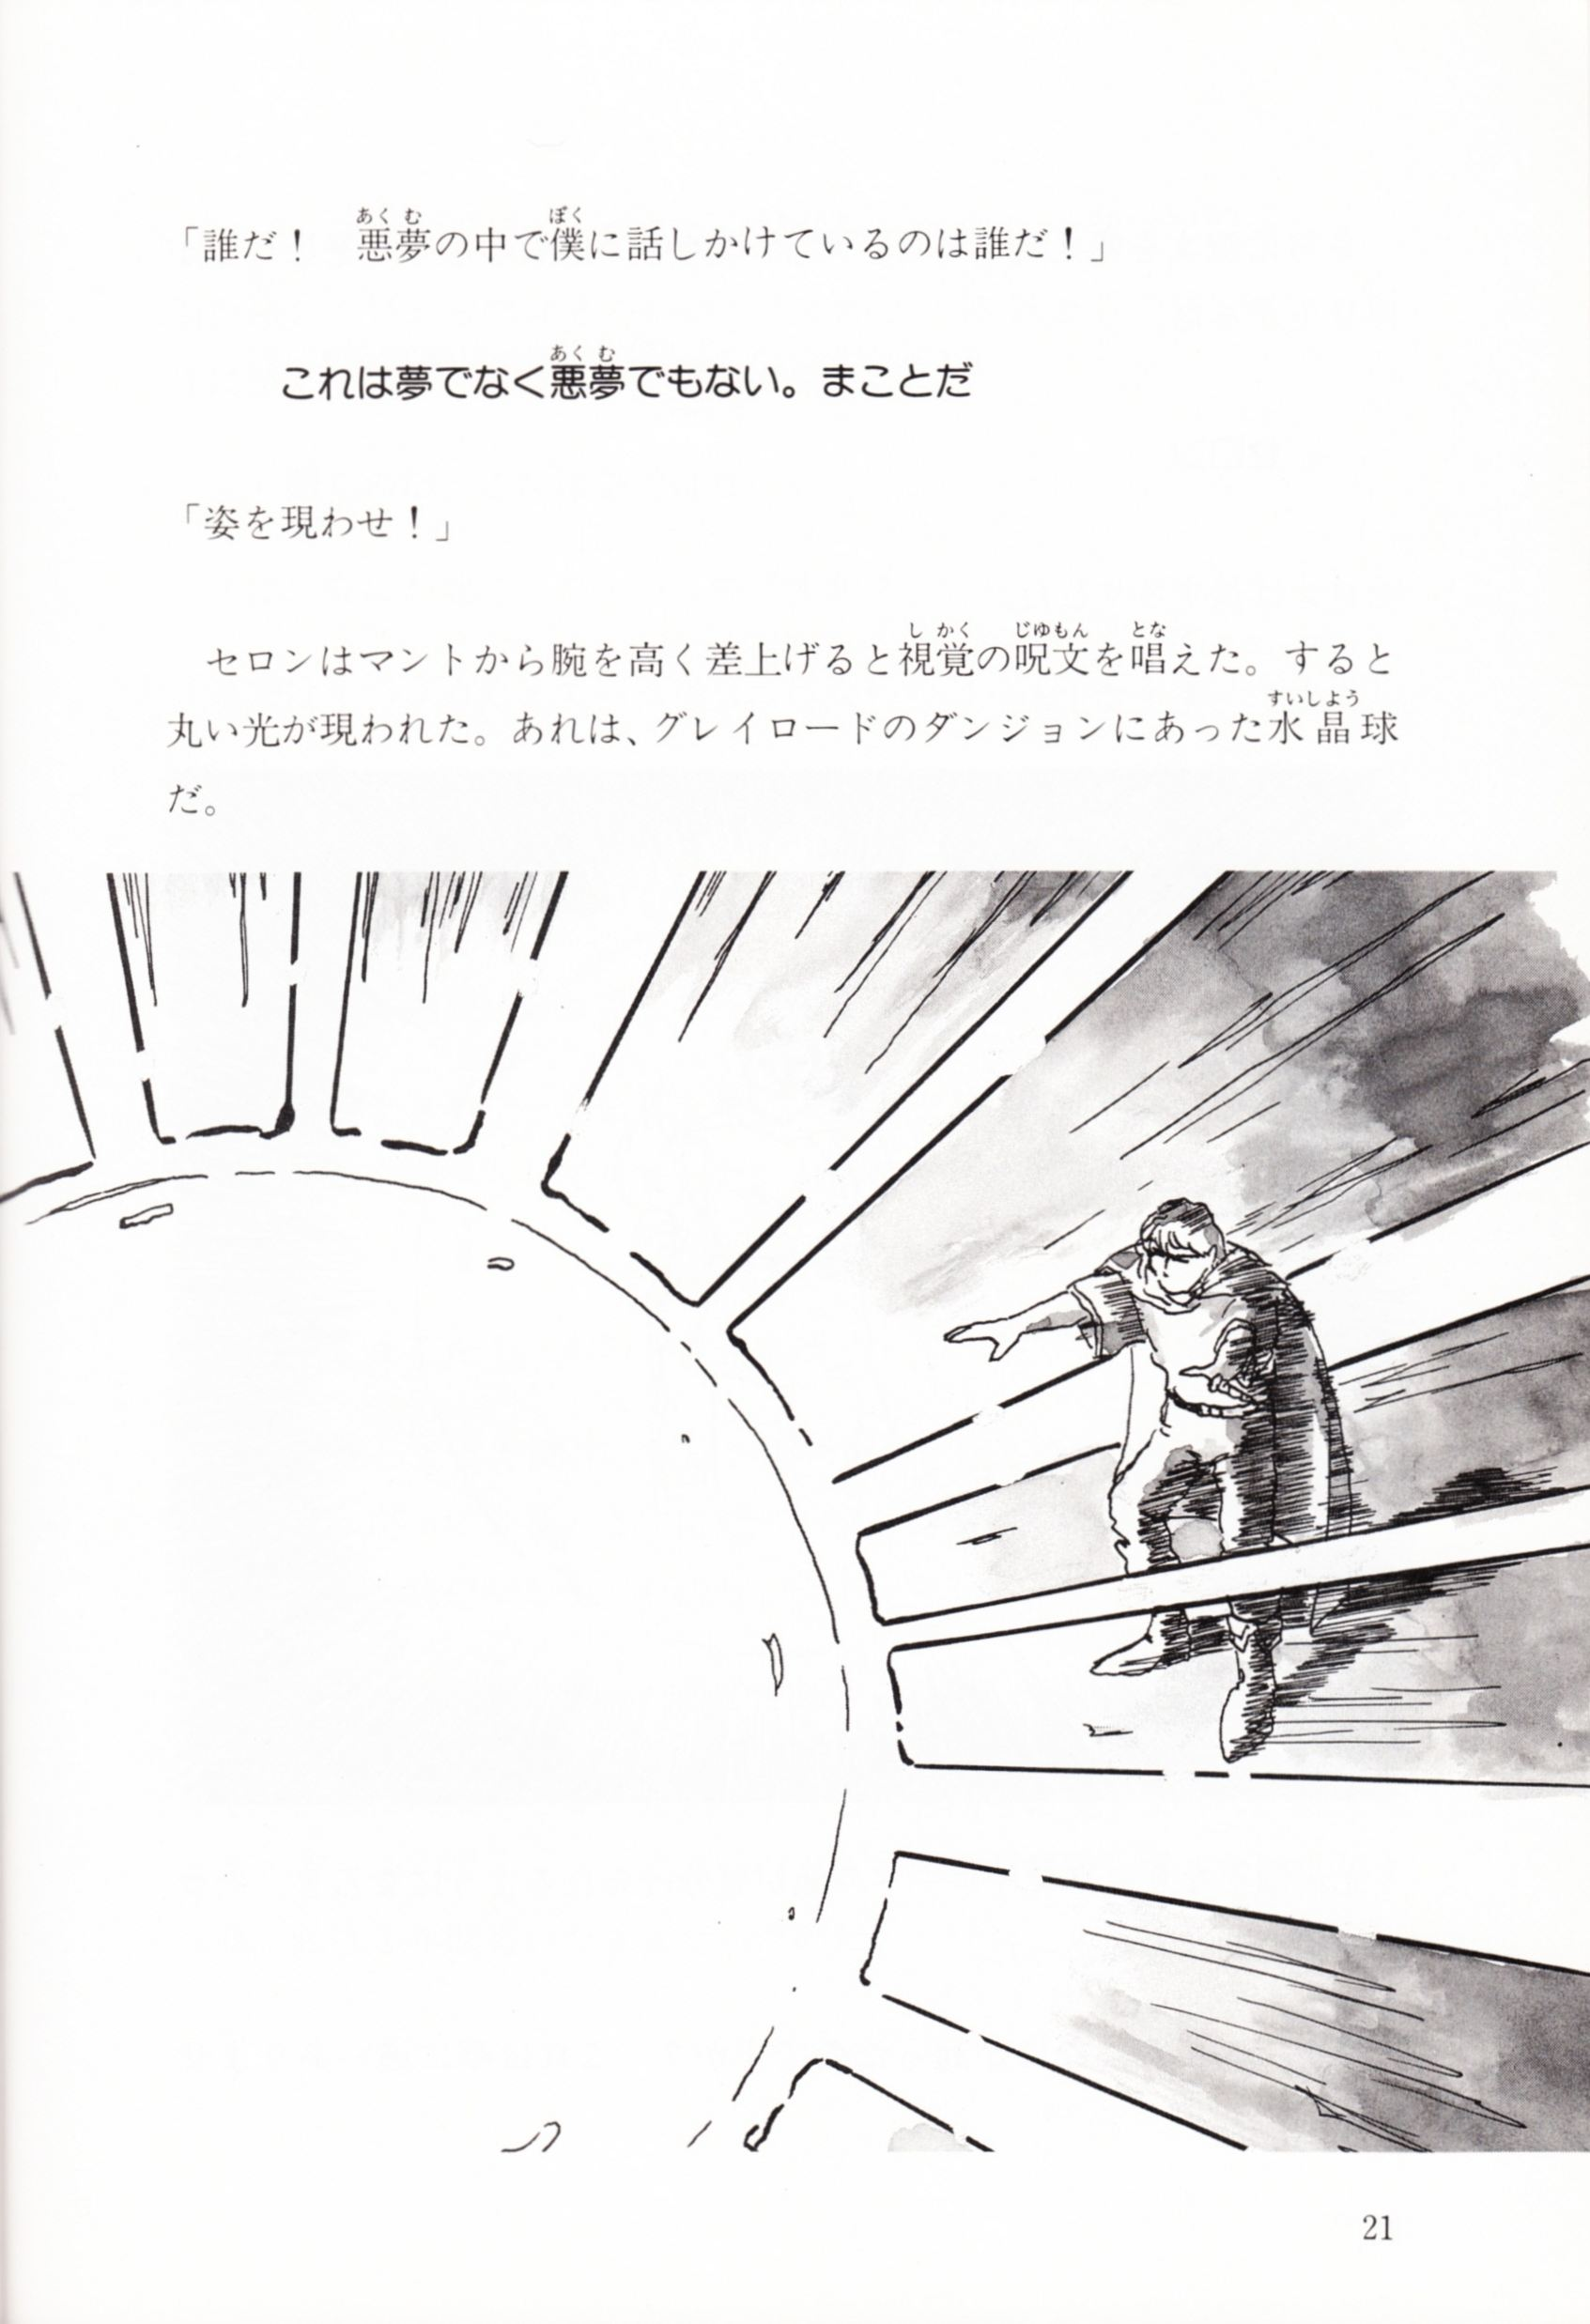 Game - Dungeon Master - JP - FM Towns - Story Guide - Page 023 - Scan